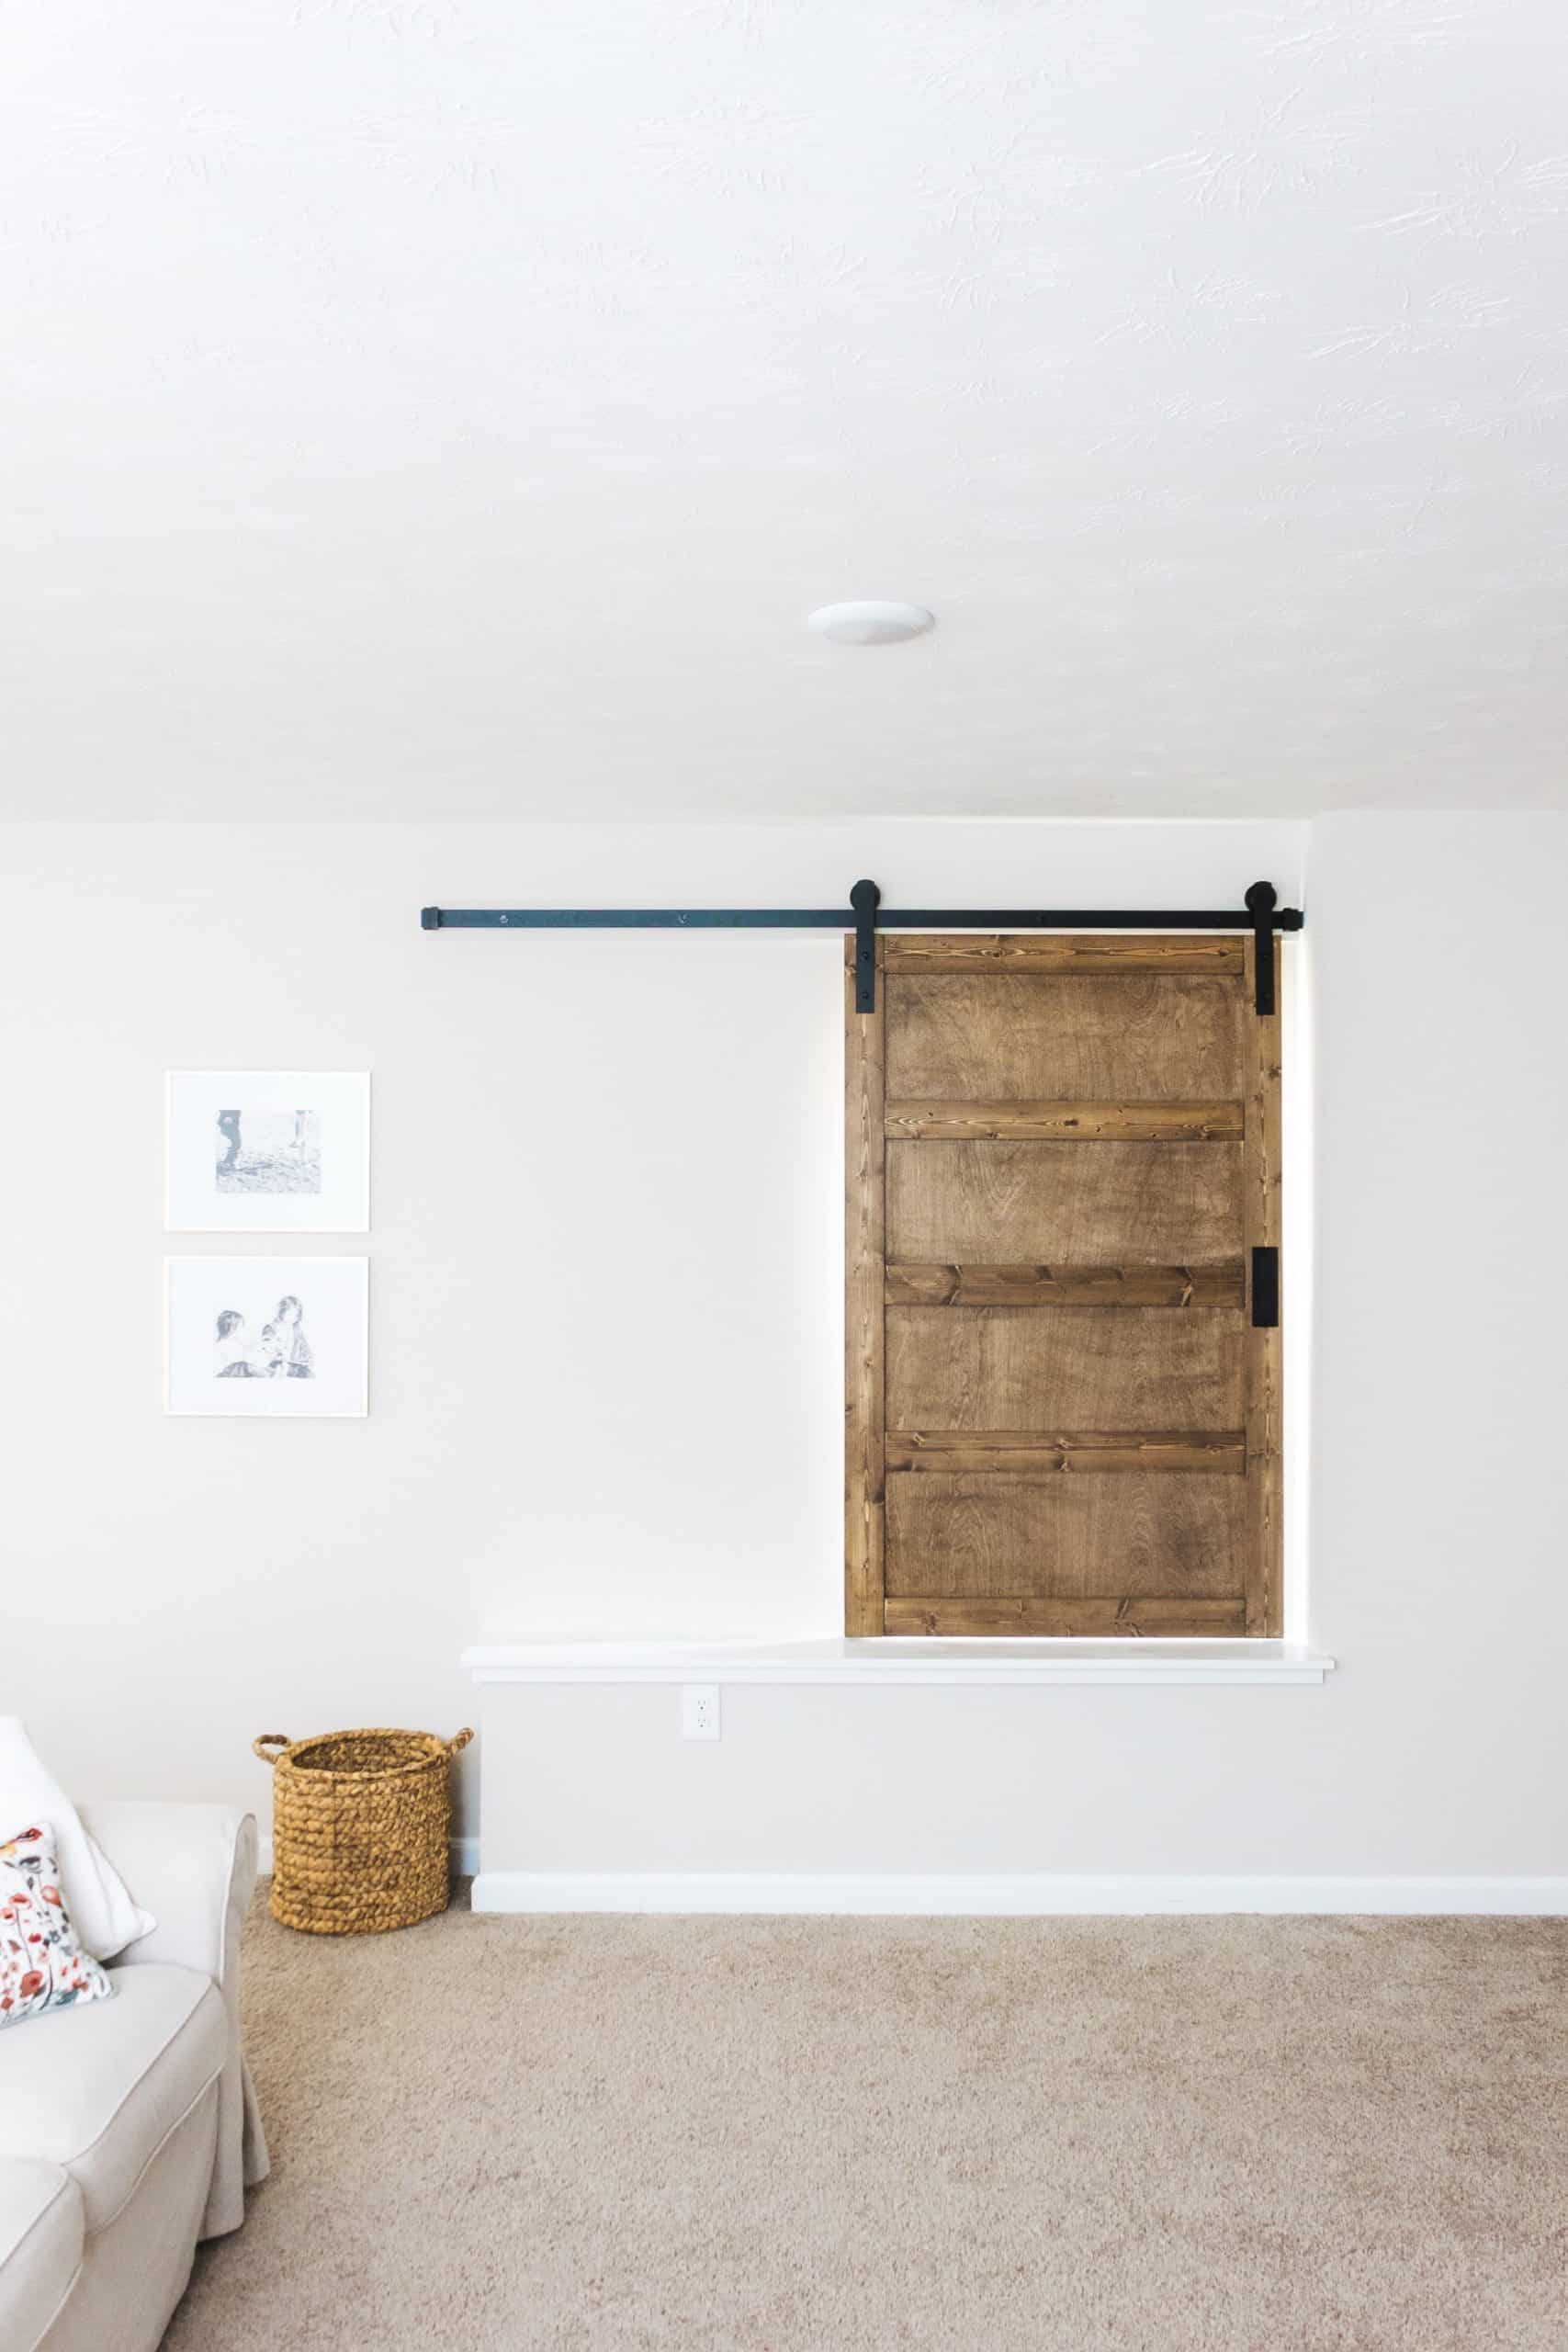 Want to build a modern farmhouse-inspired sliding barn door window covering? Head to www.freeandunfettered.com for the complete tutorial. #diyhome #modernfarmhouse #slidingbarndoor #diyhomedecor